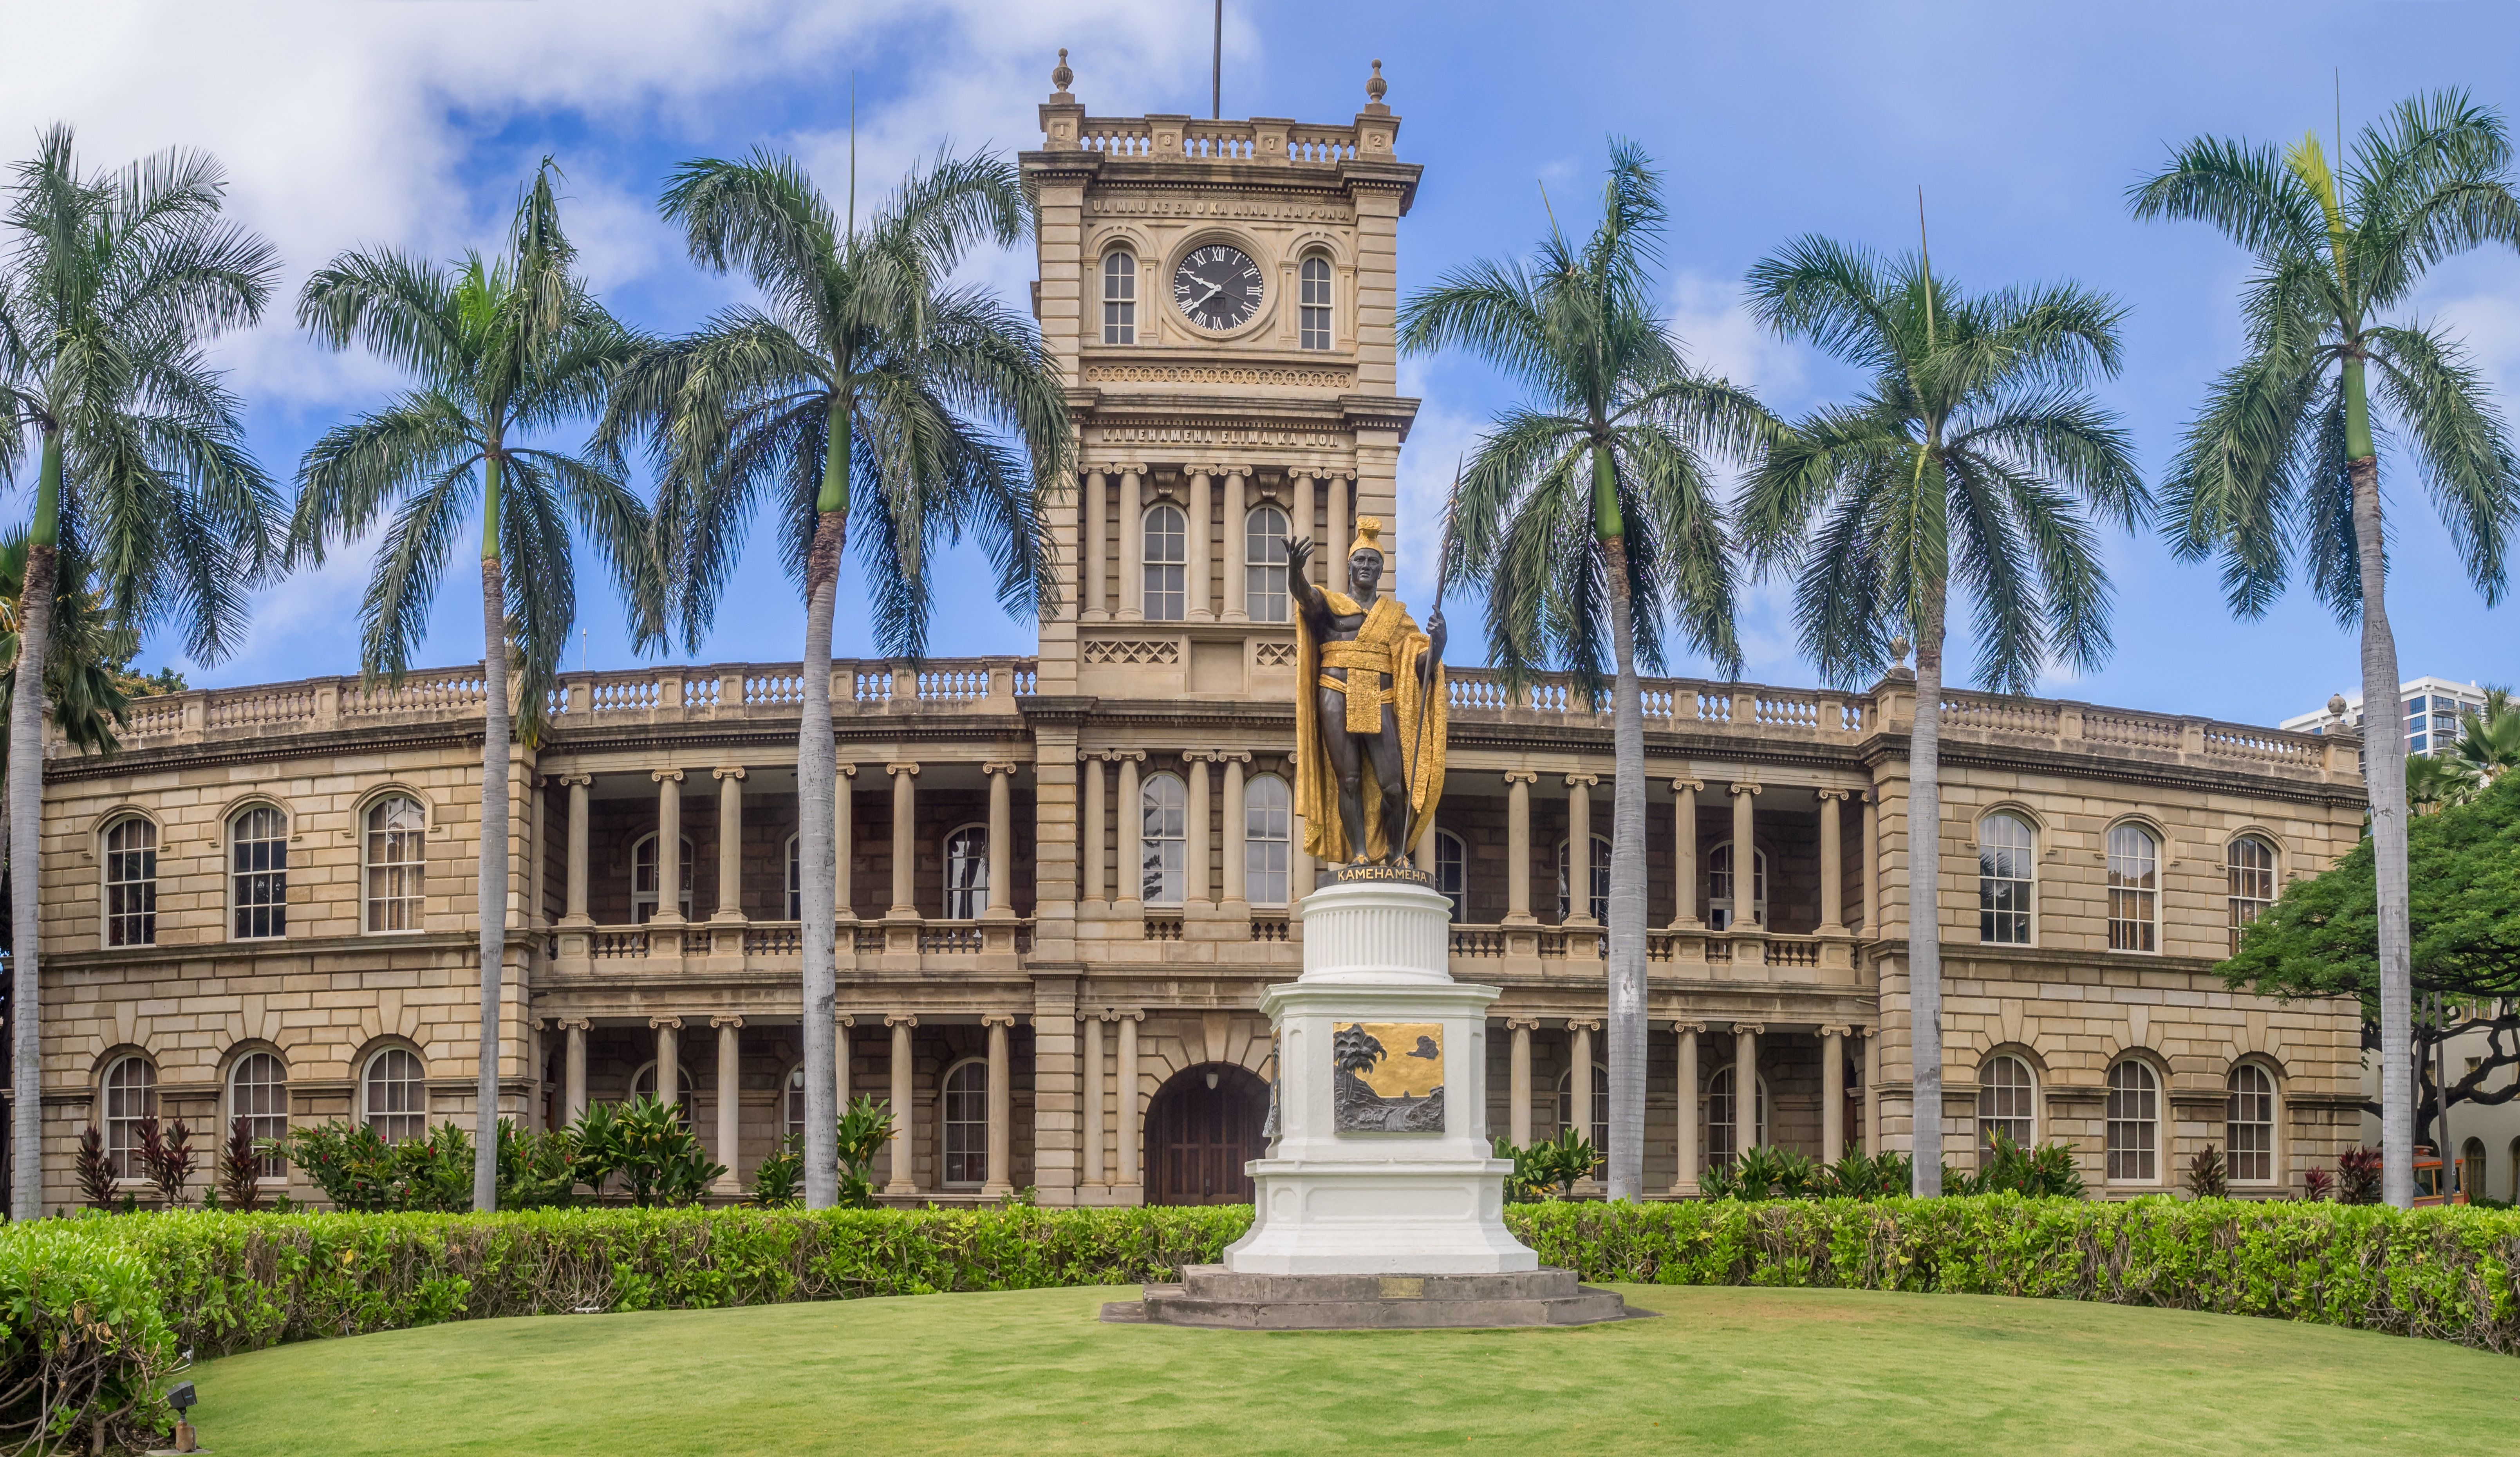 Honolulu, USA - August 6, 2016: King Kamehameha I Statue, by Thomas Gould, on August 6, 2016 in Honolulu, Hawaii. It is in front of Ali iolani Hale, the Hawaii Supreme Court Building on King Street in Honolulu.